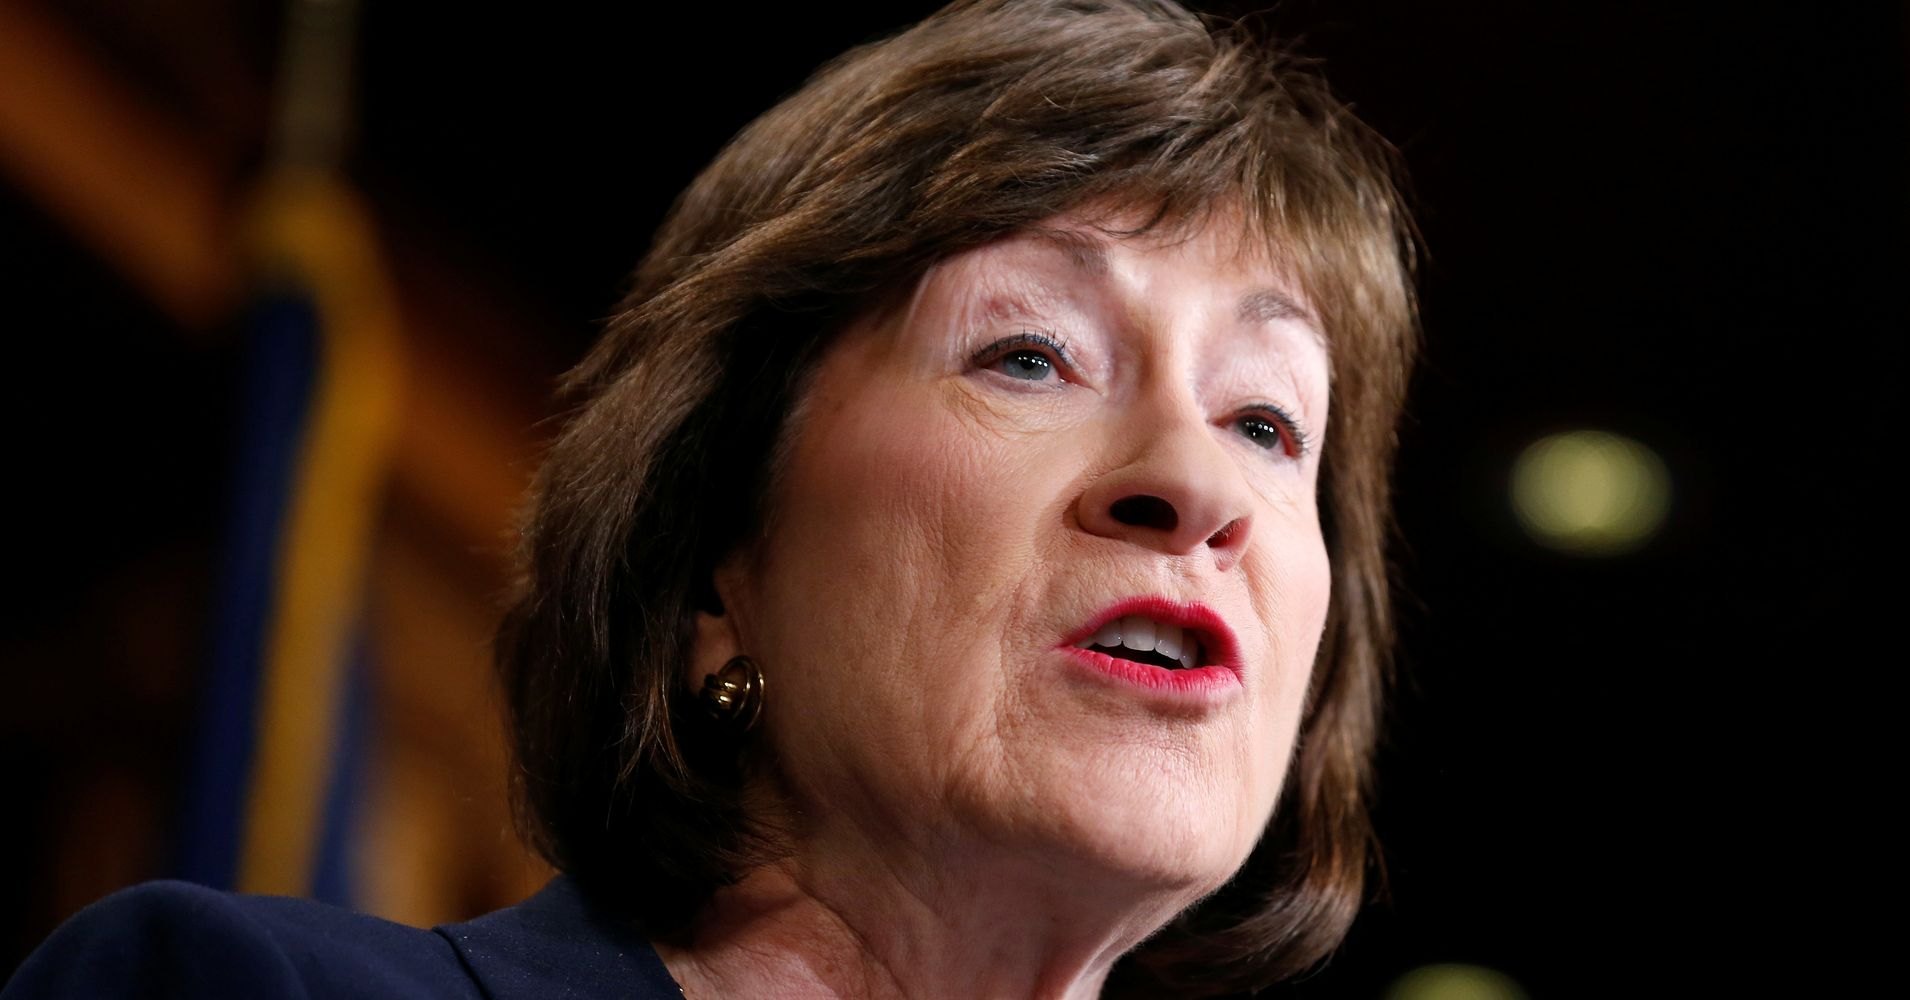 GOP Sen. Susan Collins Says Anti-Roe Supreme Court Nominee Is 'Not Acceptable'